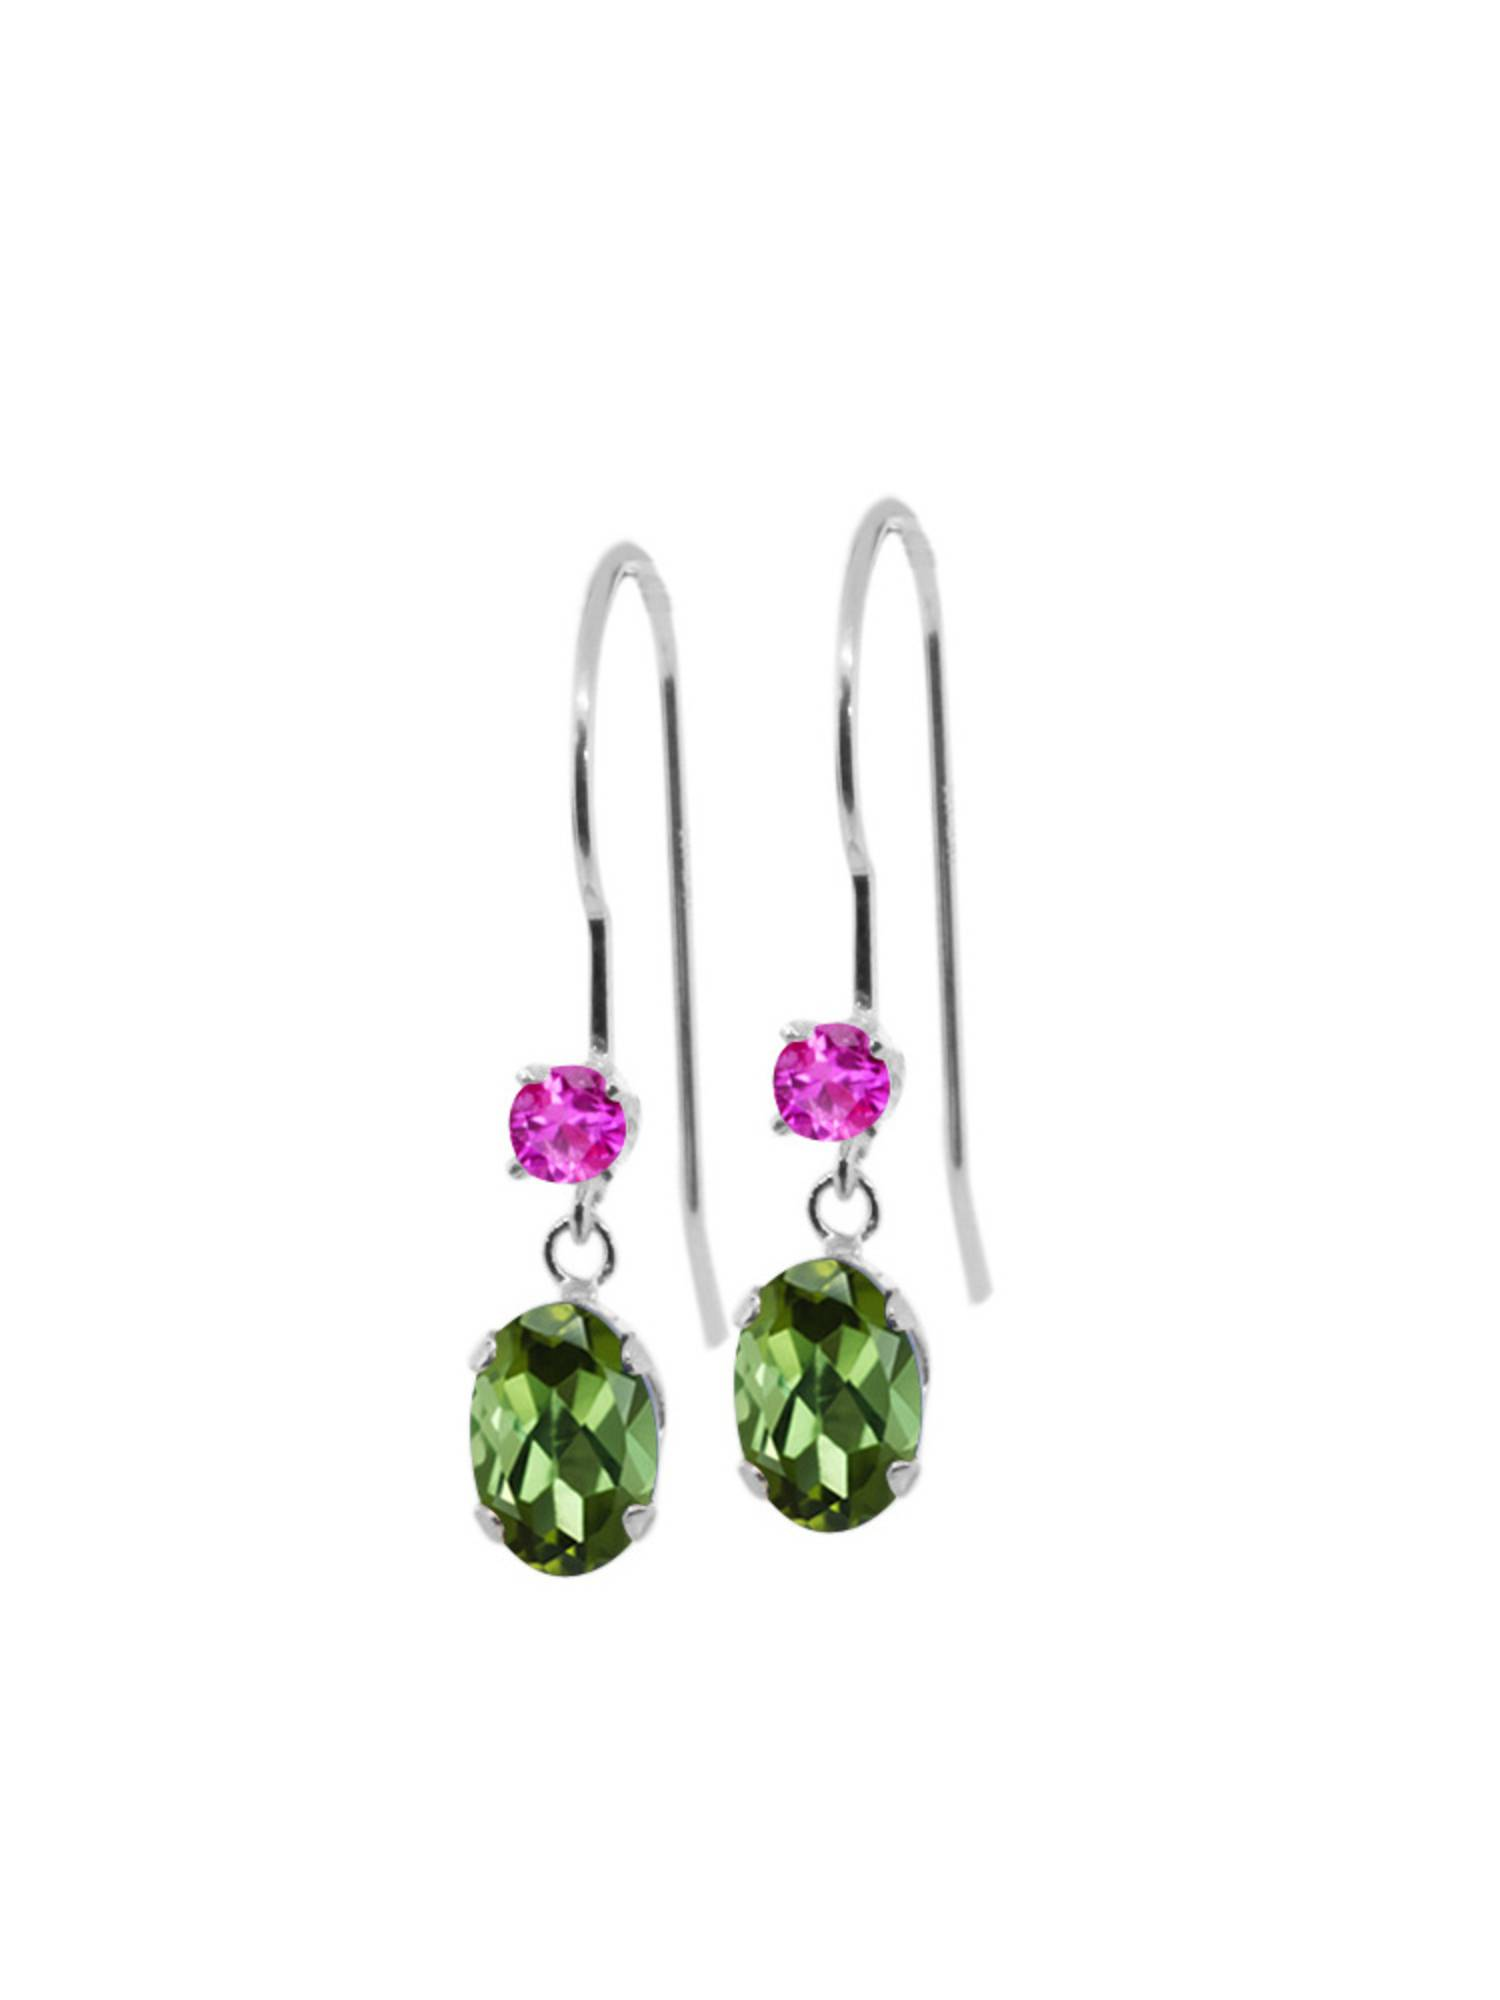 0.96 Ct Oval Green Tourmaline Pink Sapphire 14K White Gold Earrings by